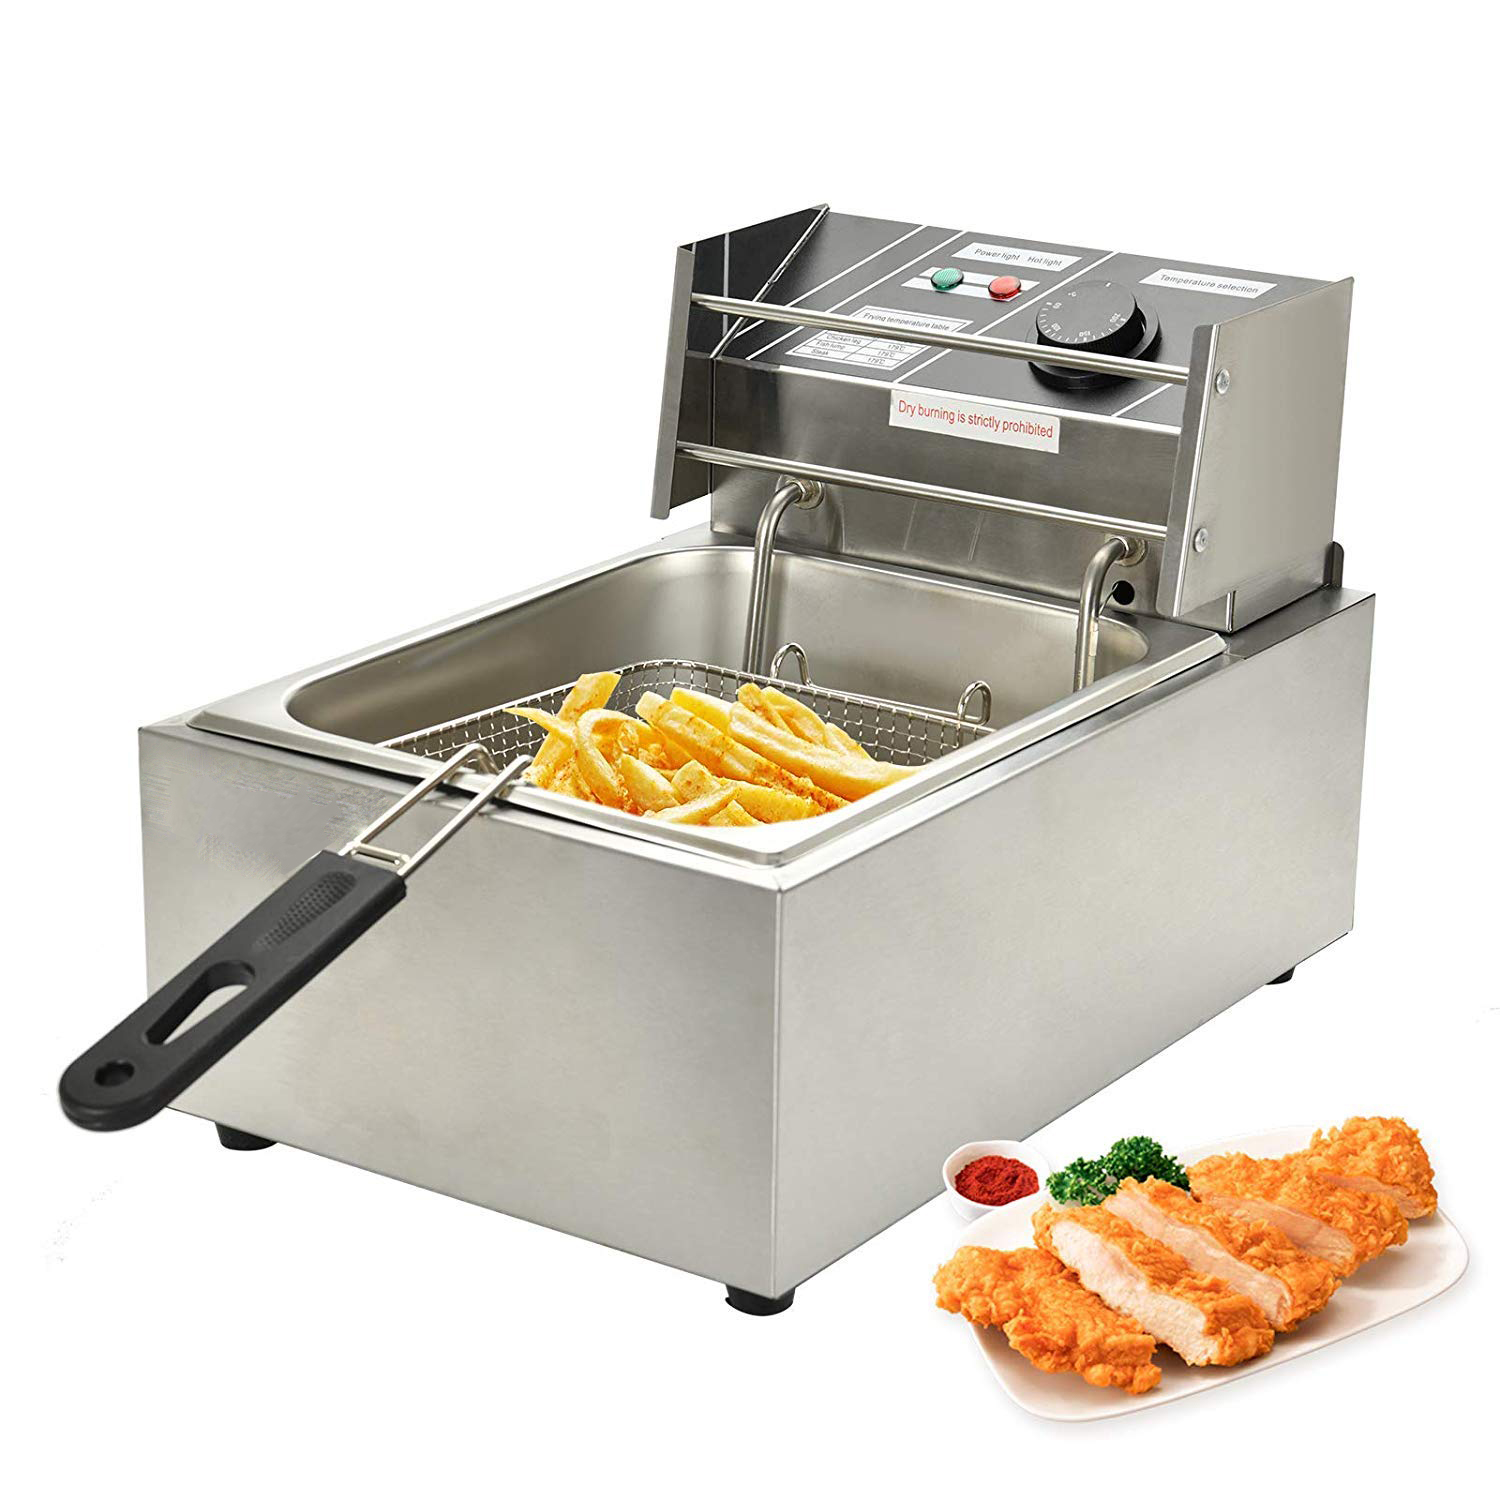 Imported - Get 30% OFF on Electric Single Deep Fryer, Fully Stainless Steel  Body